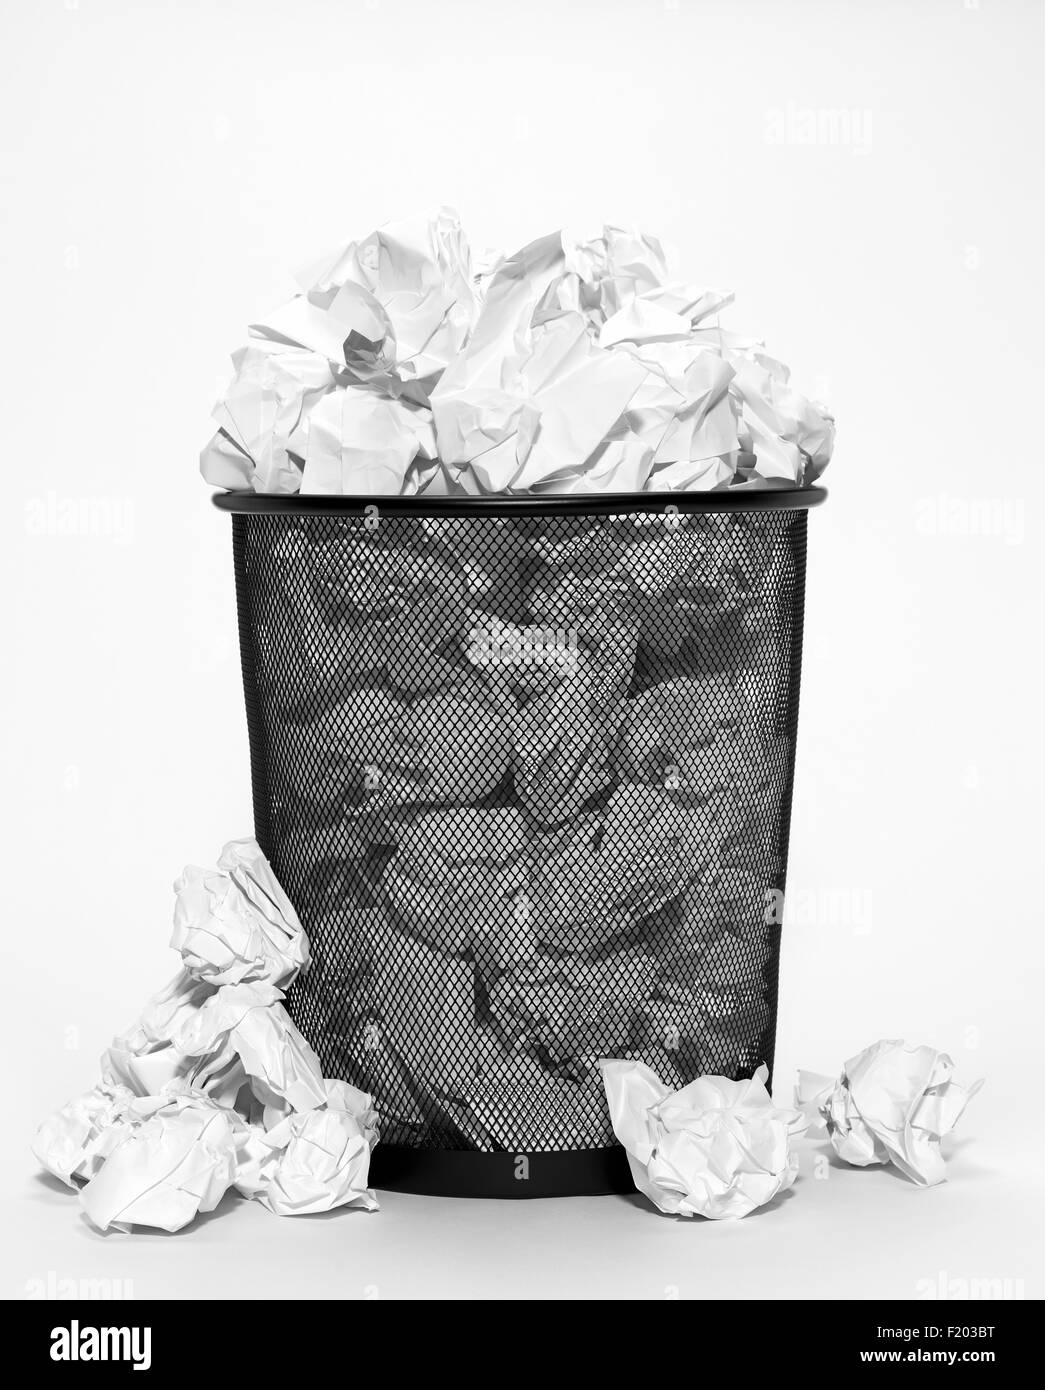 Isolated bin with crumpled paper - Stock Image